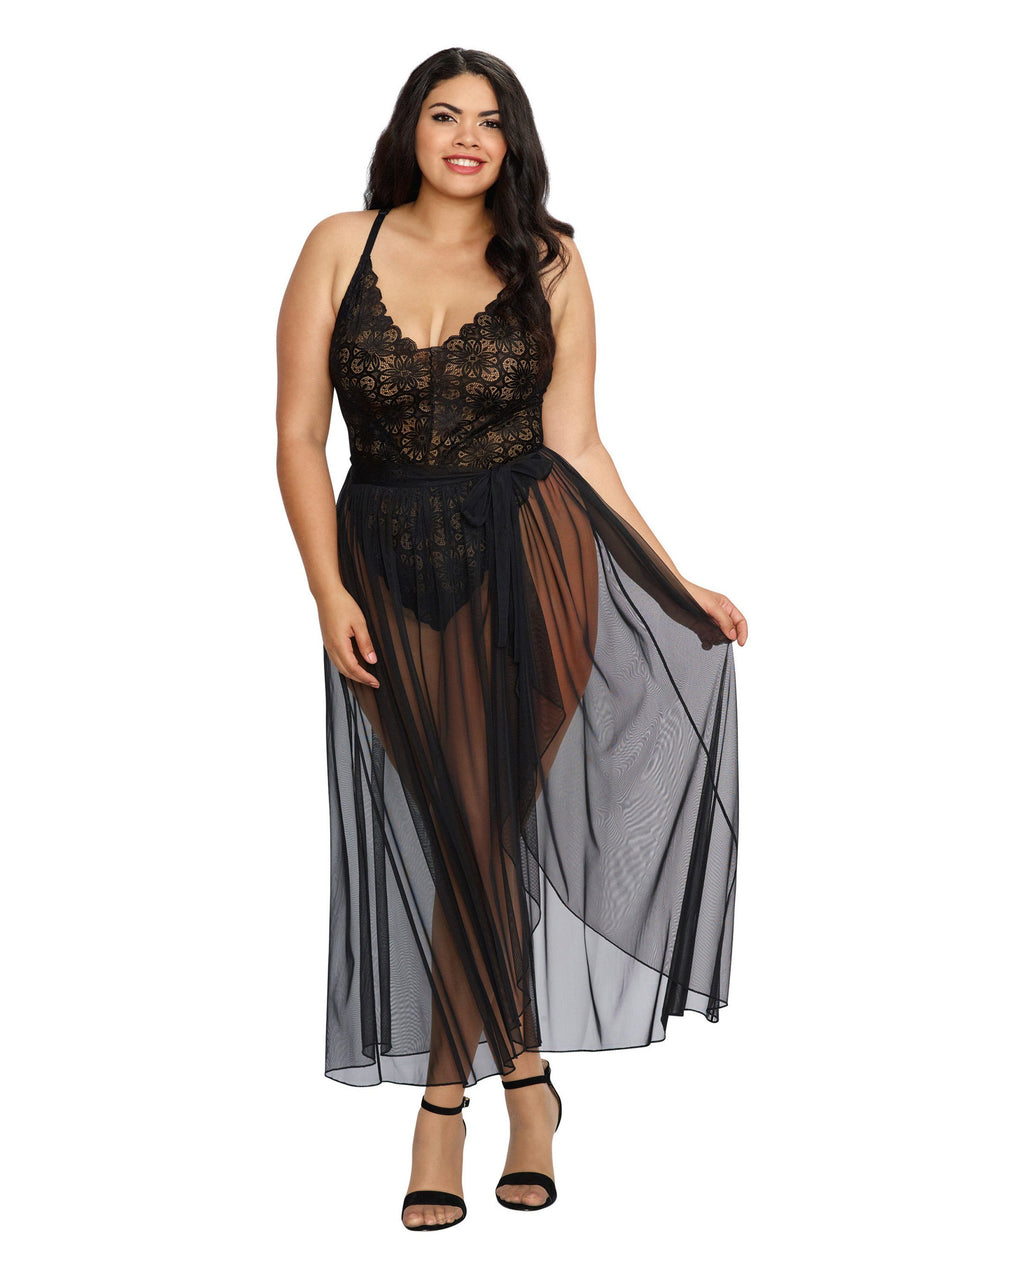 Plus Size Mosaic Lace Teddy & Sheer Skirt Teddy Dreamgirl International 1X Black